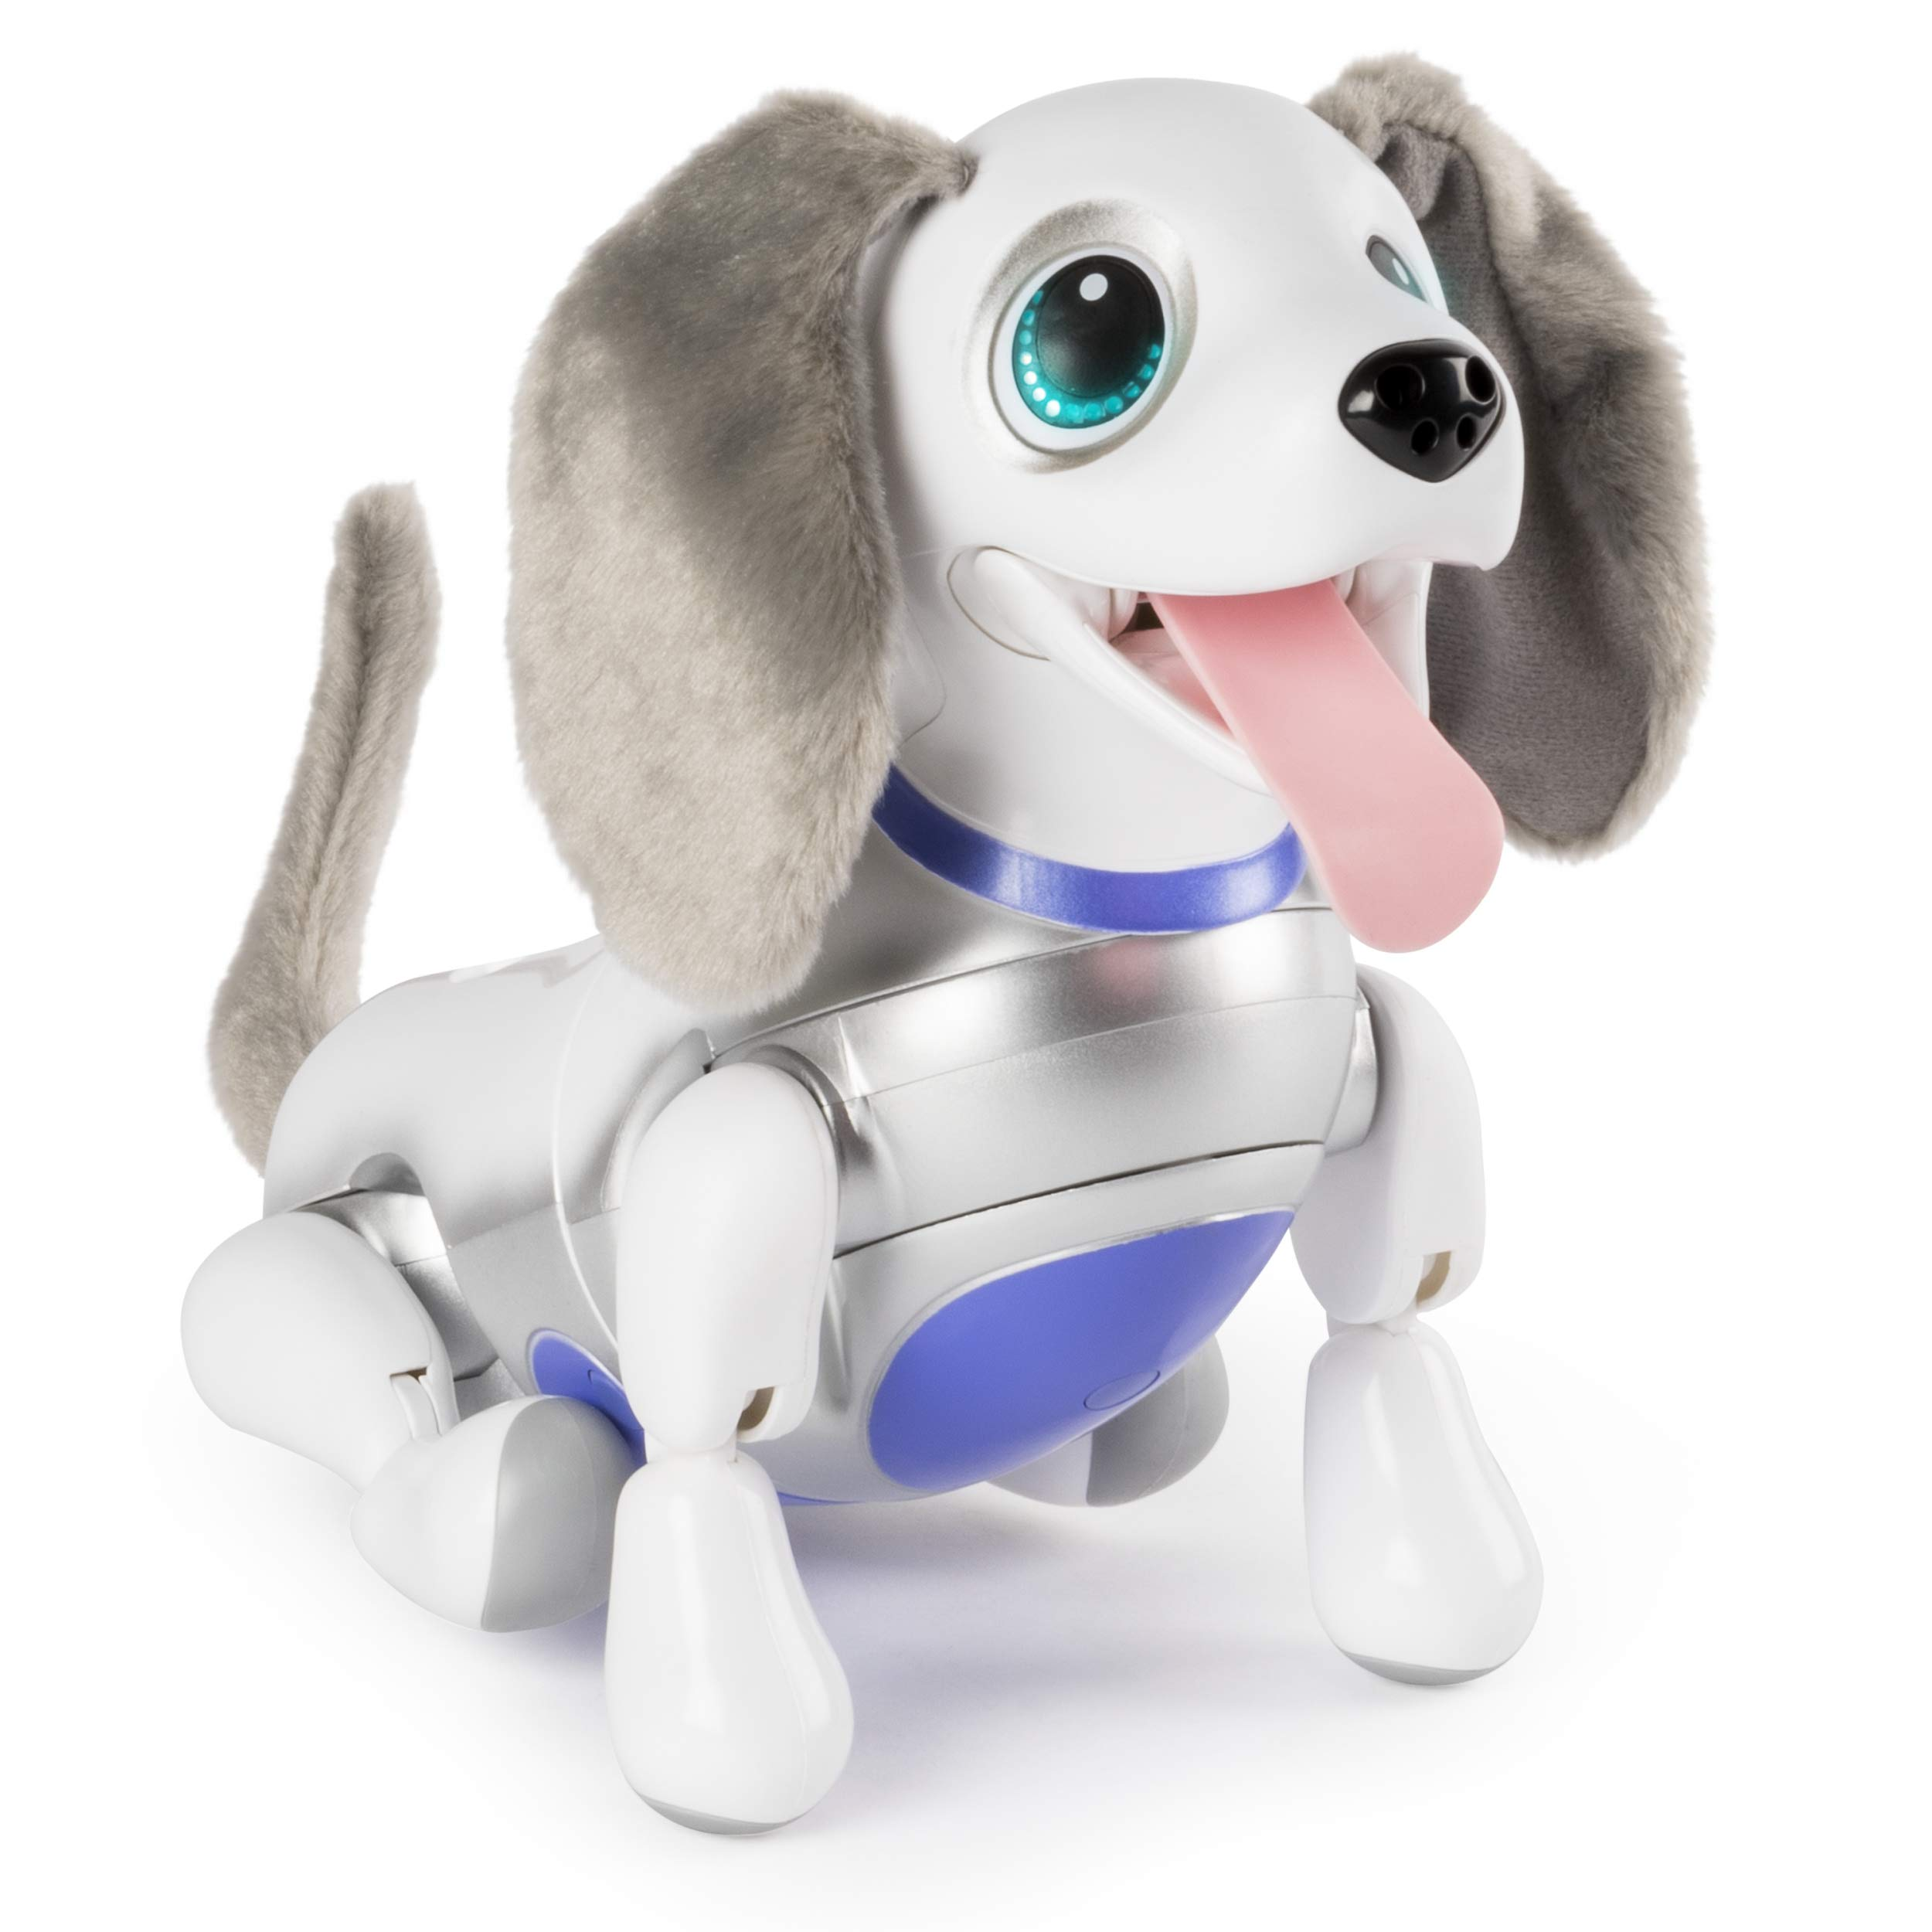 zoomer Playful Pup, Responsive Robotic Dog with Voice Recognition & Realistic Motion, For Ages 5 & Up by Zoomer (Image #1)